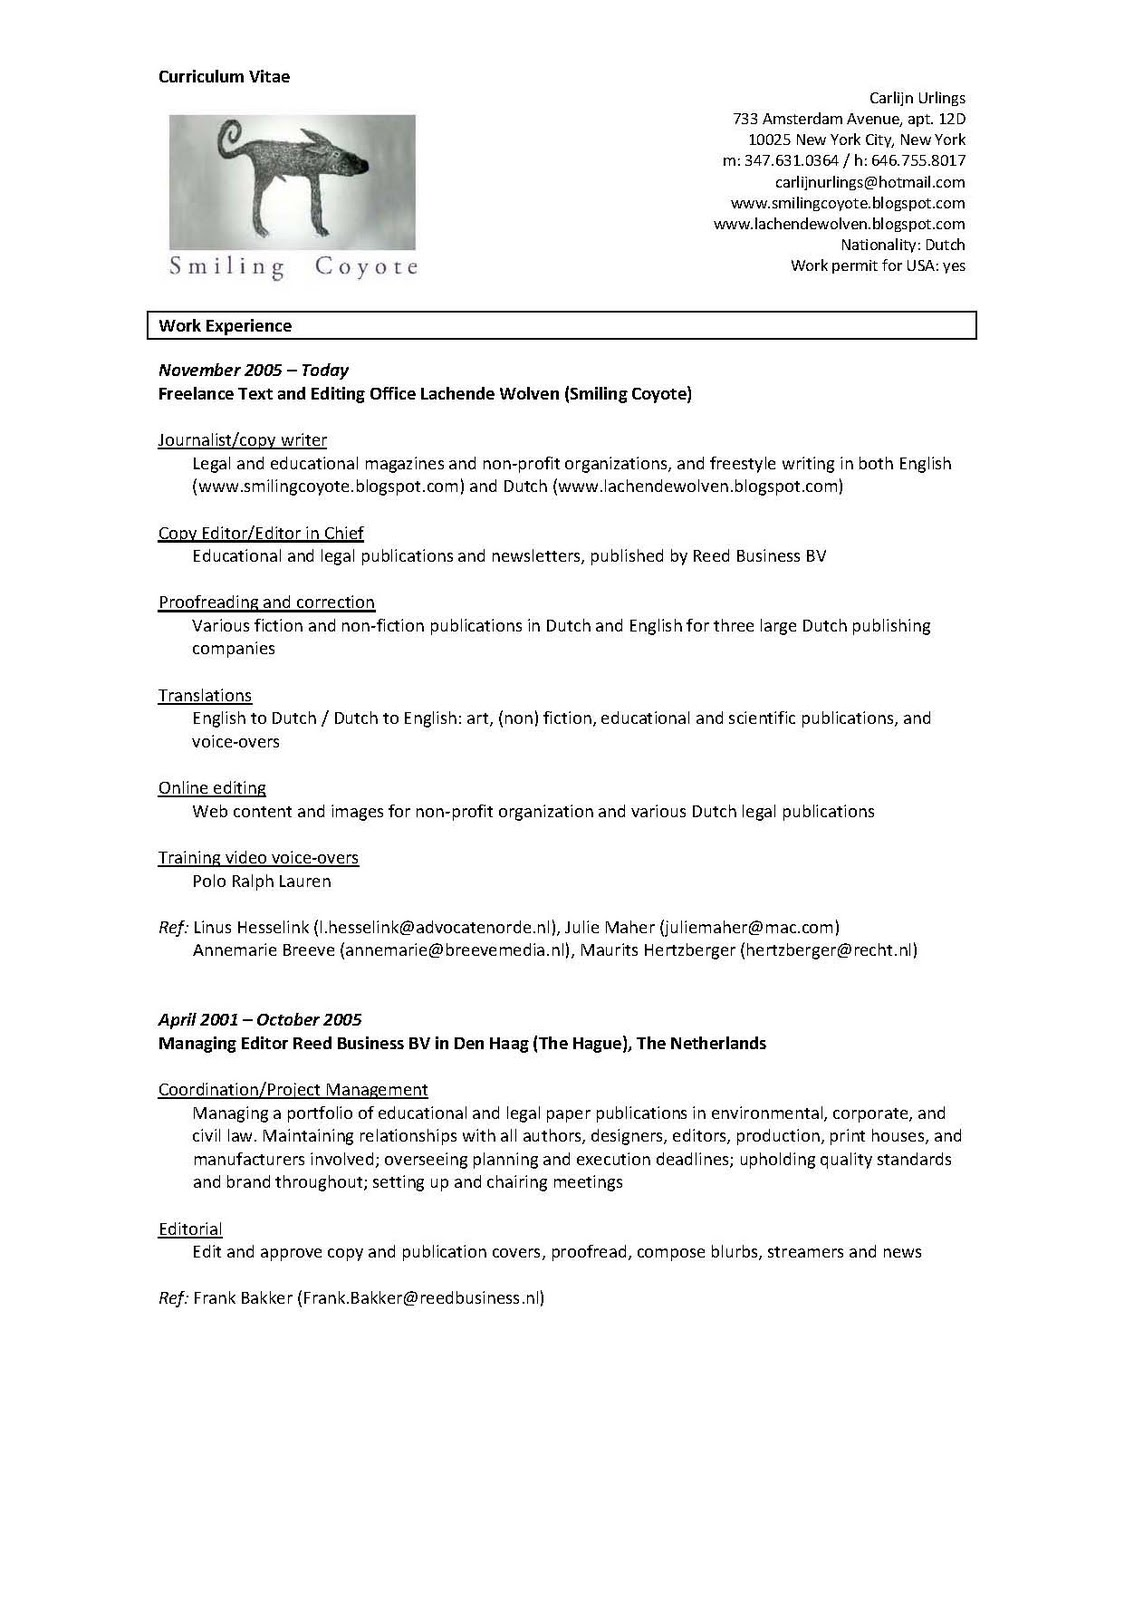 Best Curriculum Vitae Proofreading Website For College